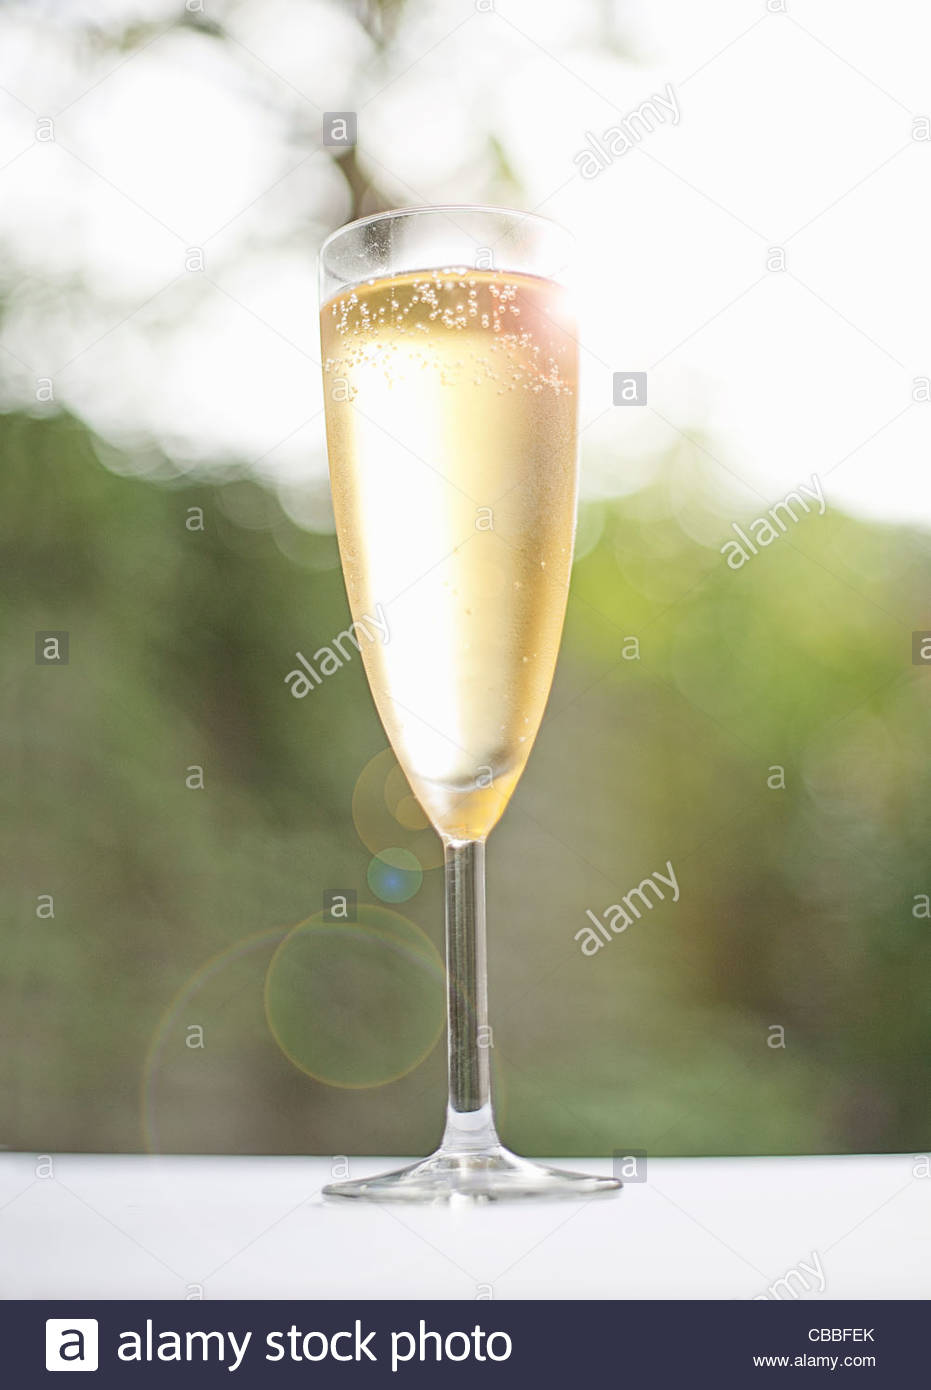 Glass of champagne outdoors - Stock Image